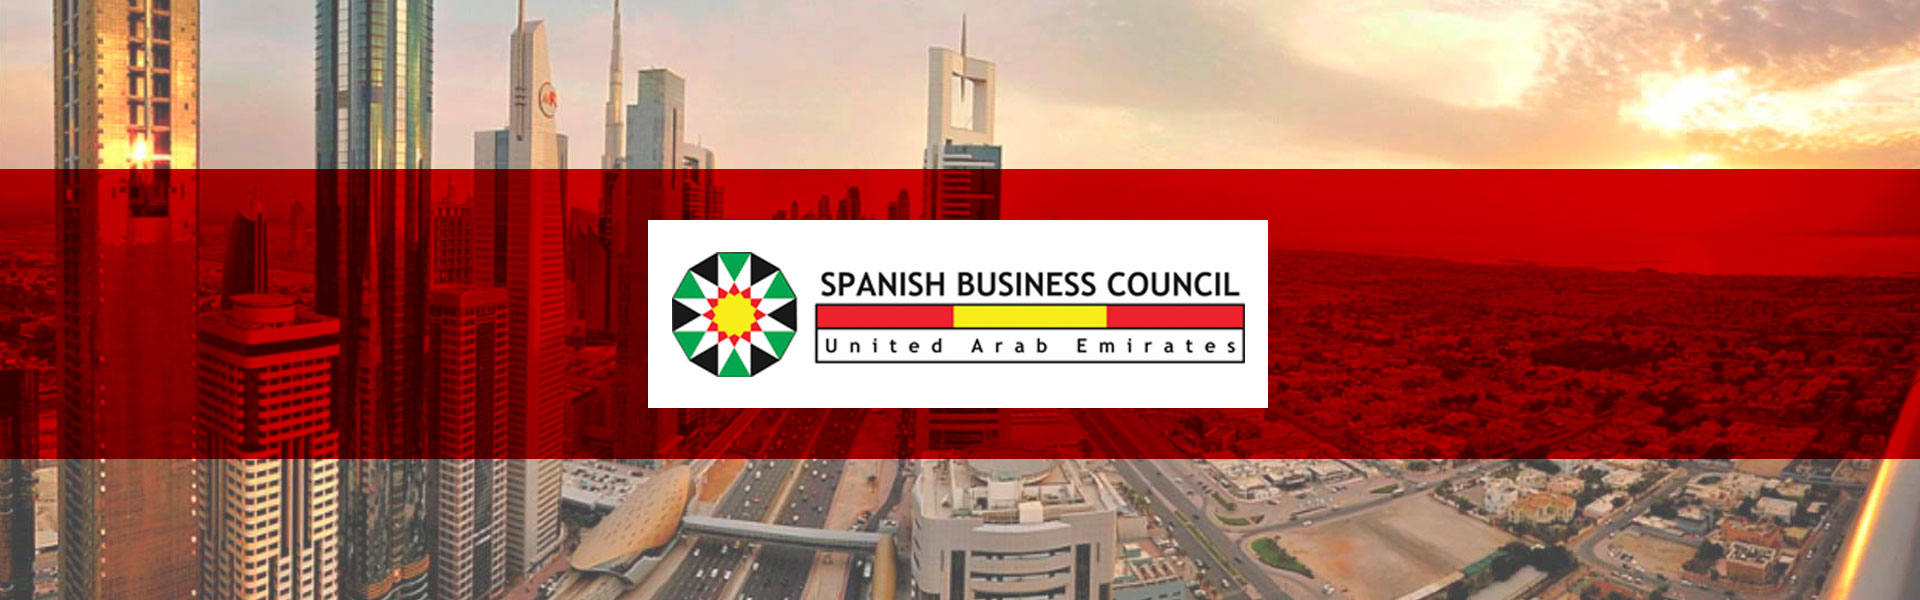 Spanish Bussines Council